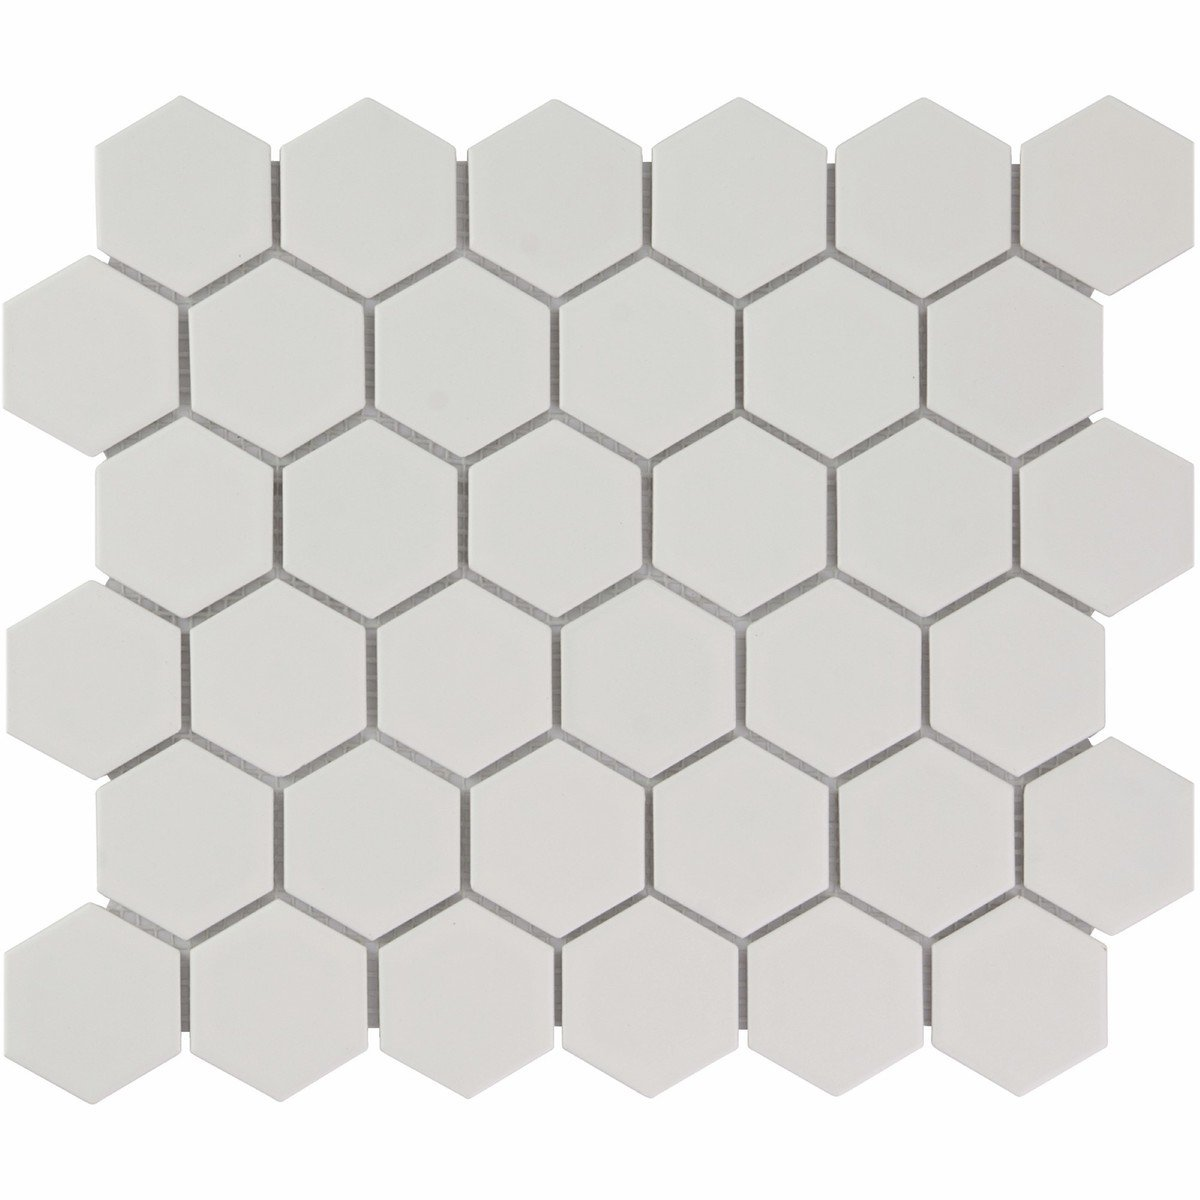 Carrelage hexagonal blanc fashion designs - Carrelage hexagonal blanc ...